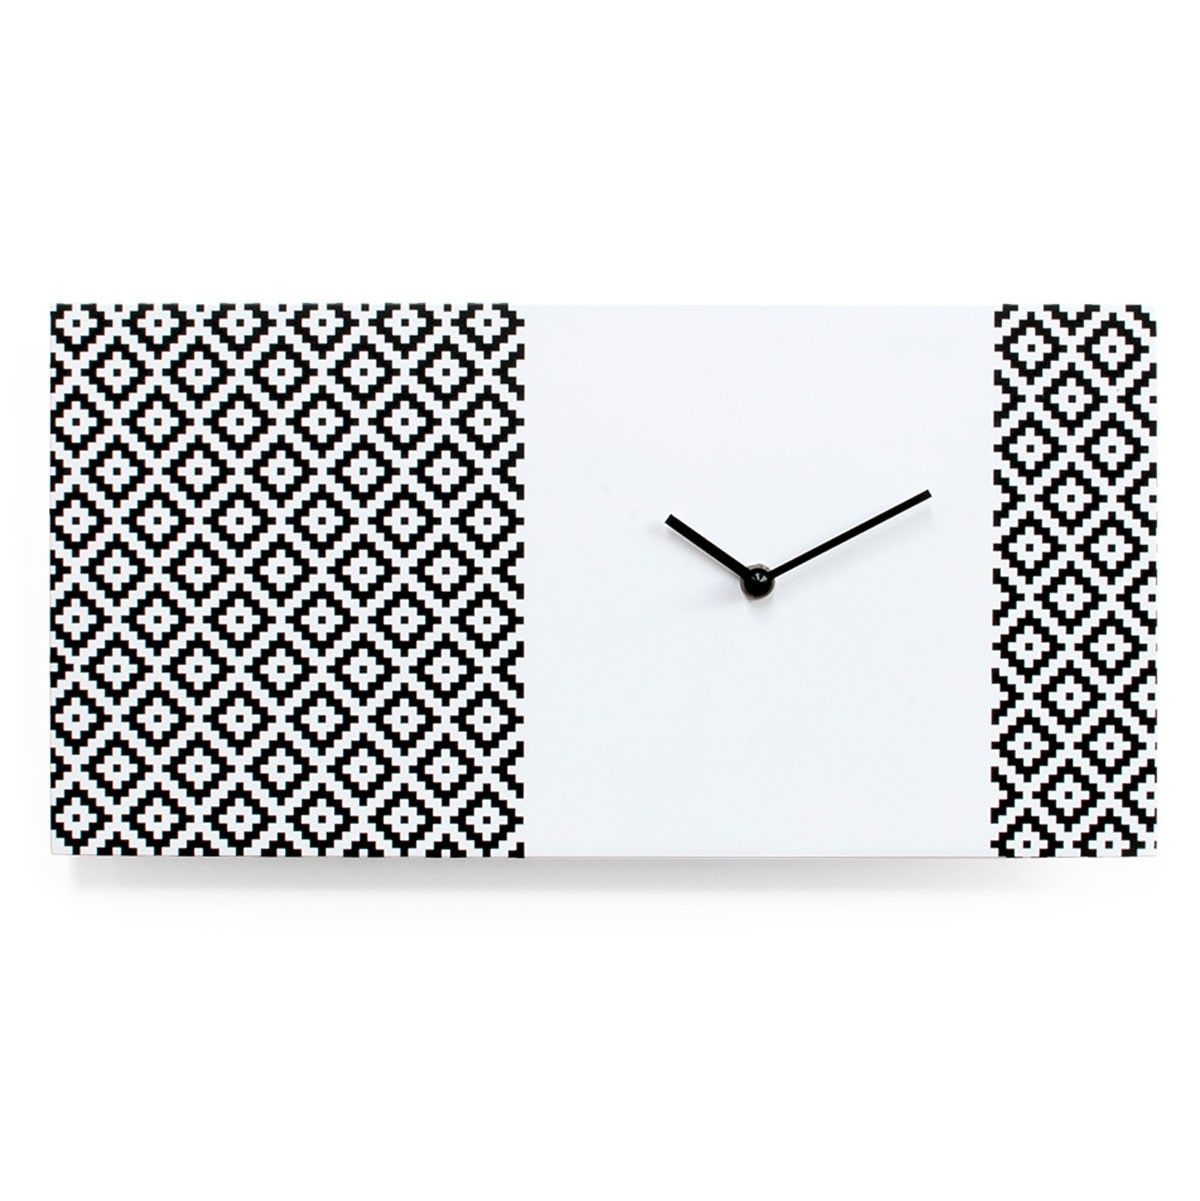 Stylish designer high end modern horizontal rectangular wall stylish designer high end modern horizontal rectangular wall mounted analog clock in white and black amipublicfo Image collections